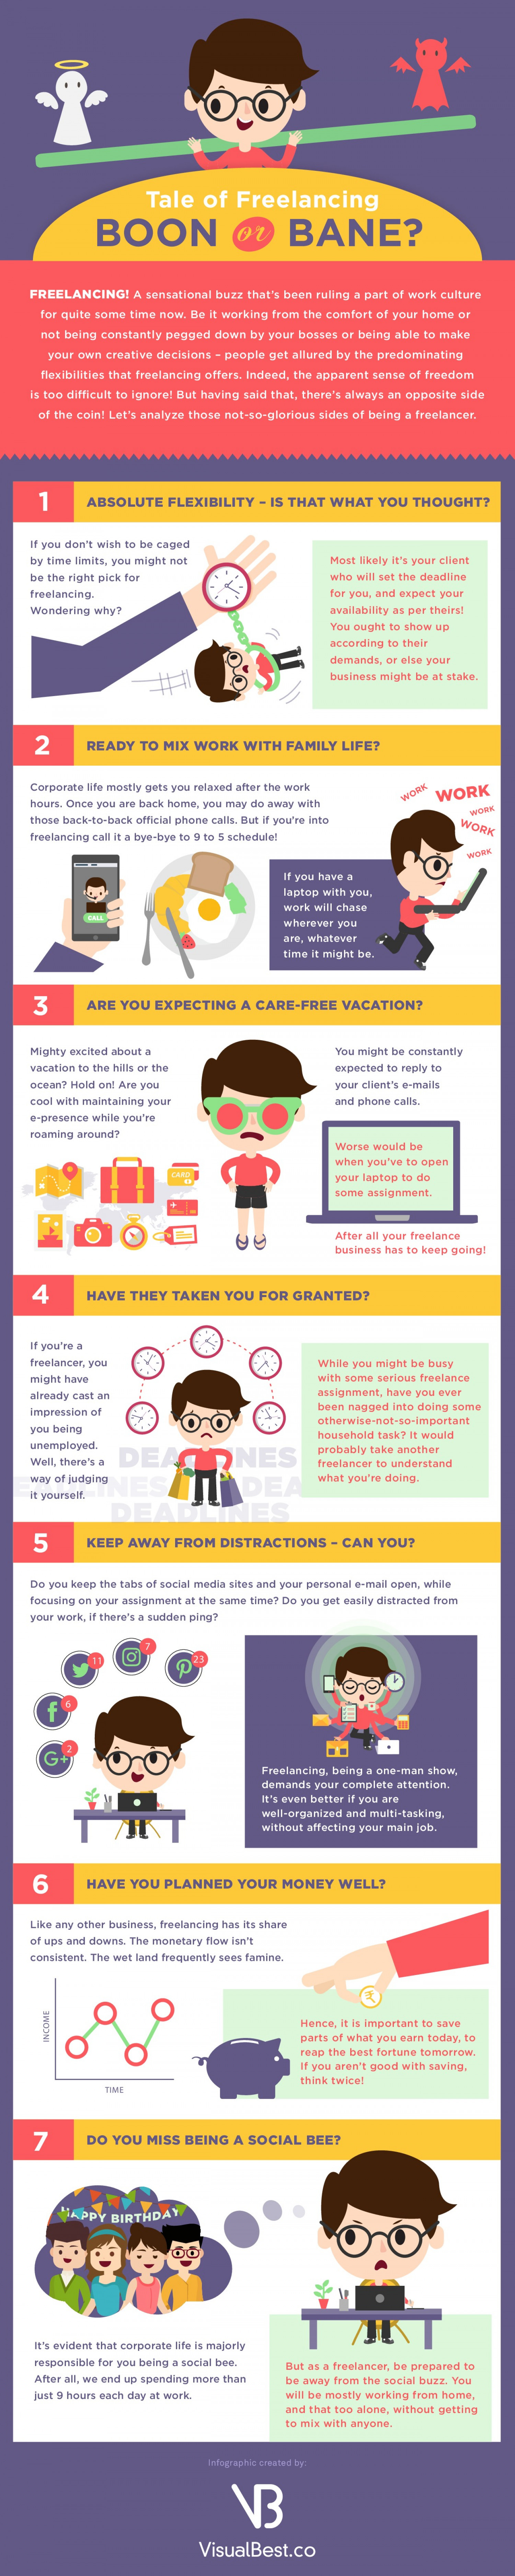 Tale of Freelancing: Boon or Bane? [Infographic] Infographic